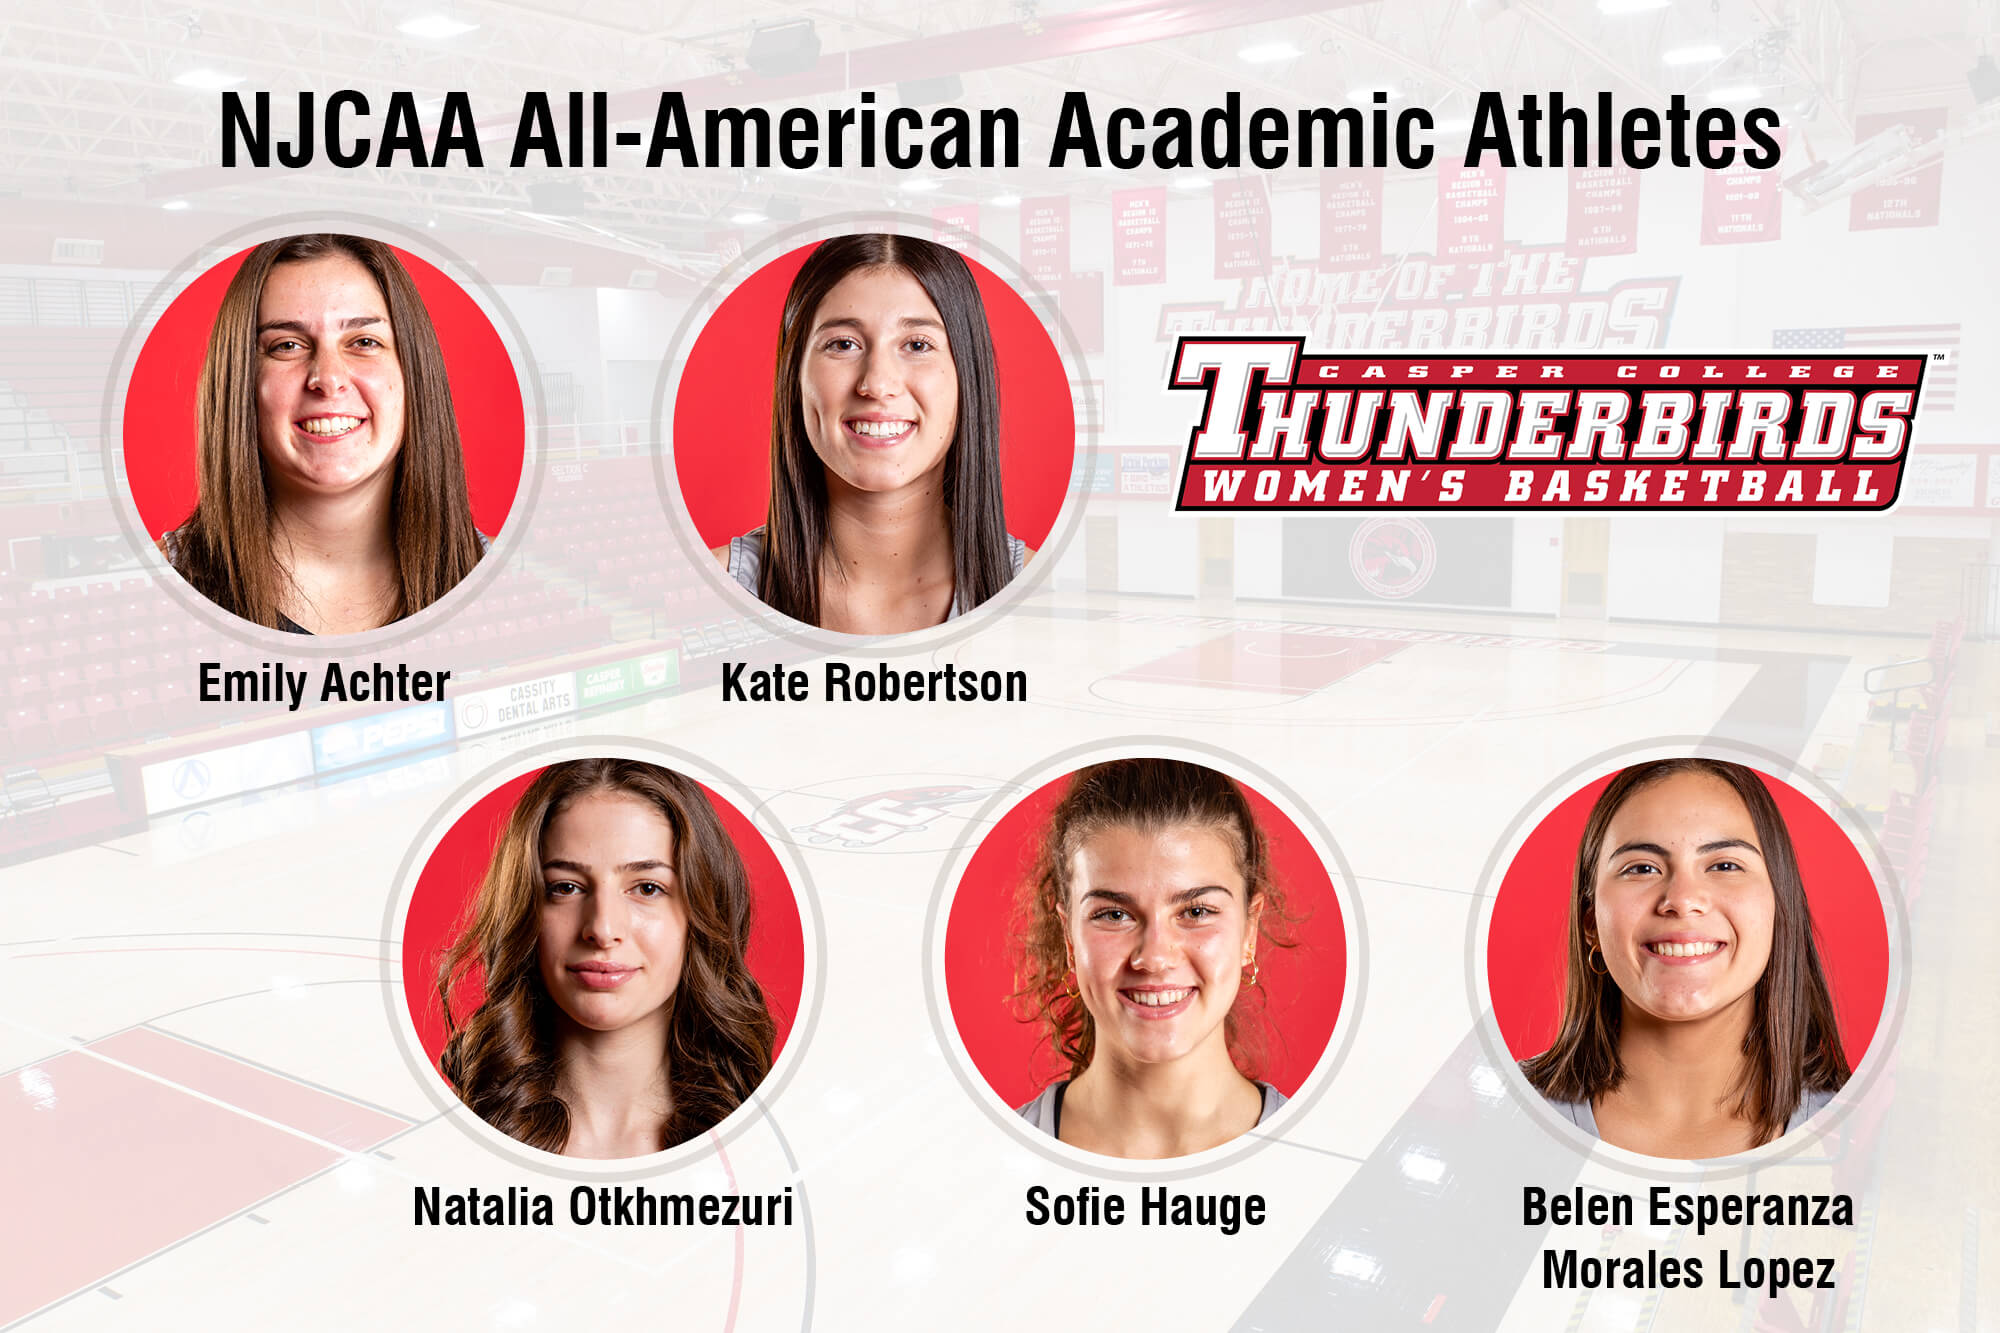 Image of five women's basketball team members for press release.